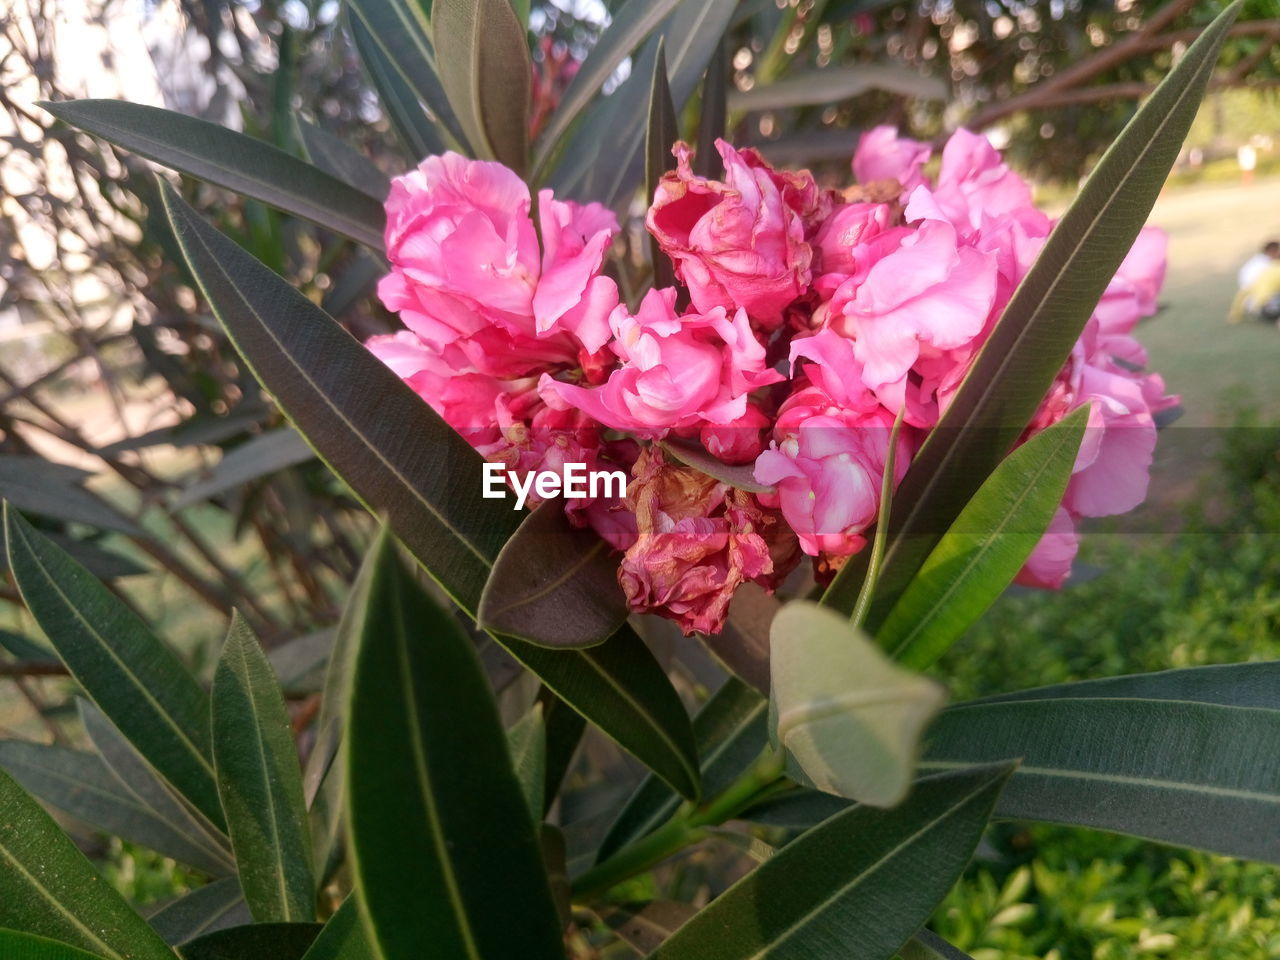 flower, pink color, growth, nature, beauty in nature, petal, plant, no people, outdoors, leaf, fragility, blooming, flower head, freshness, day, close-up